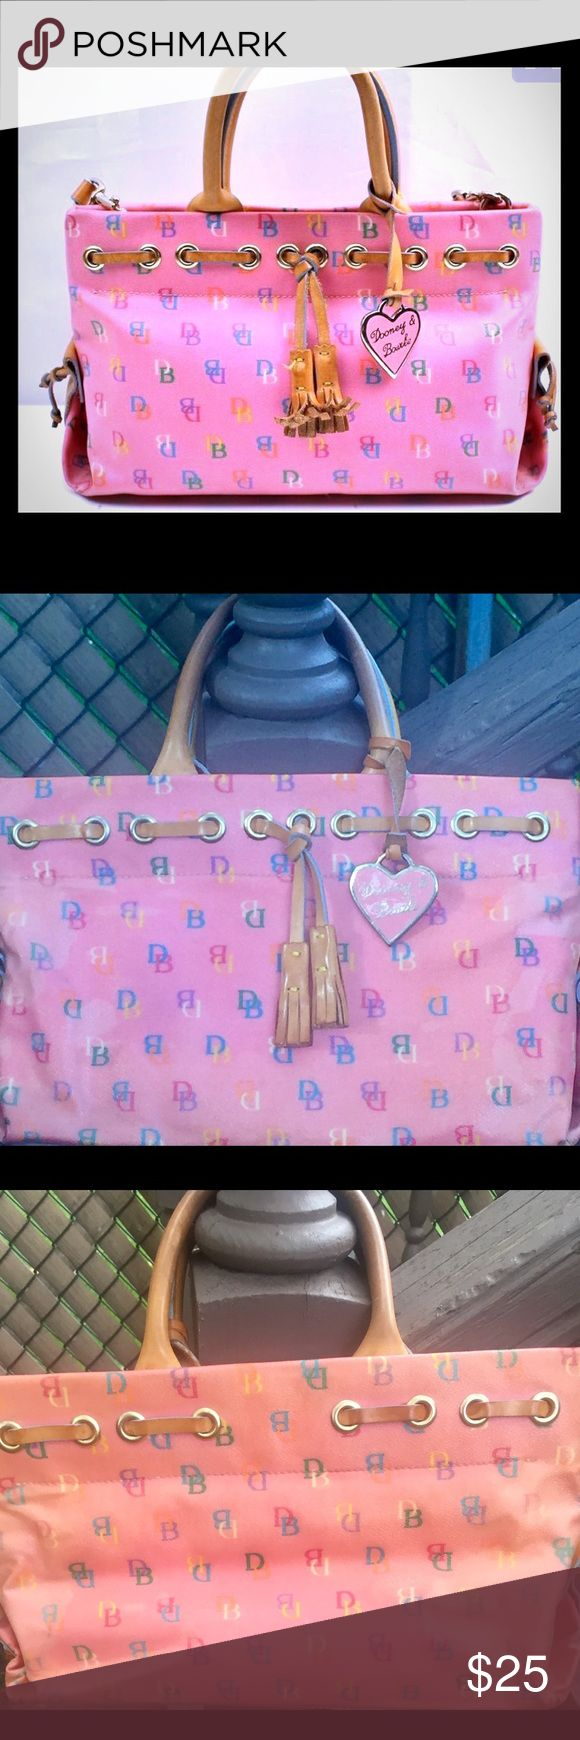 Dooney and Burke bag. this bag has a lot of life left in it! I would love to see it get a good home, it's so cute! It's coated with canvas,and leather handles, can go for a cleaning tho. I posted the pix above, if you guys have any questions please don't hesitate to ask, whoever purchases this is getting 2 bags, Yes I putting another D&B in their and yes it's authentic! 🤗happy poshing!  and thank u for stopping by!any questions? Just ask thank u! Medium sized bag! Multi colored canvas bag…